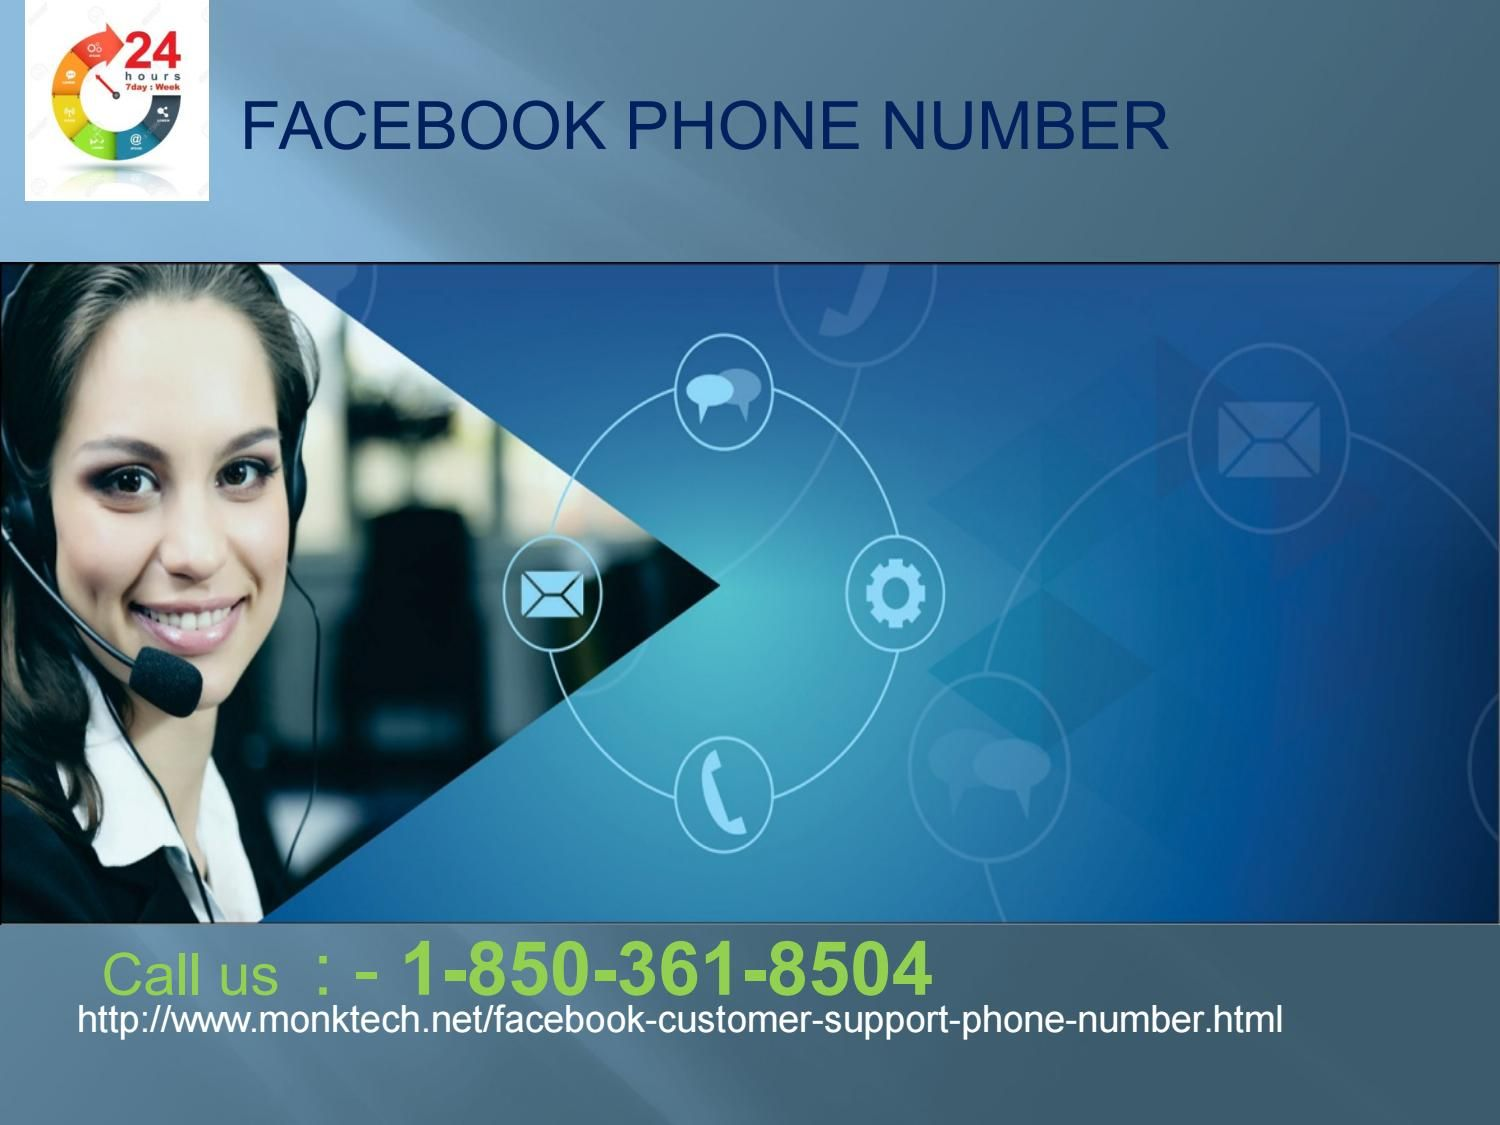 Dial Facebook Phone Number for all issues related to